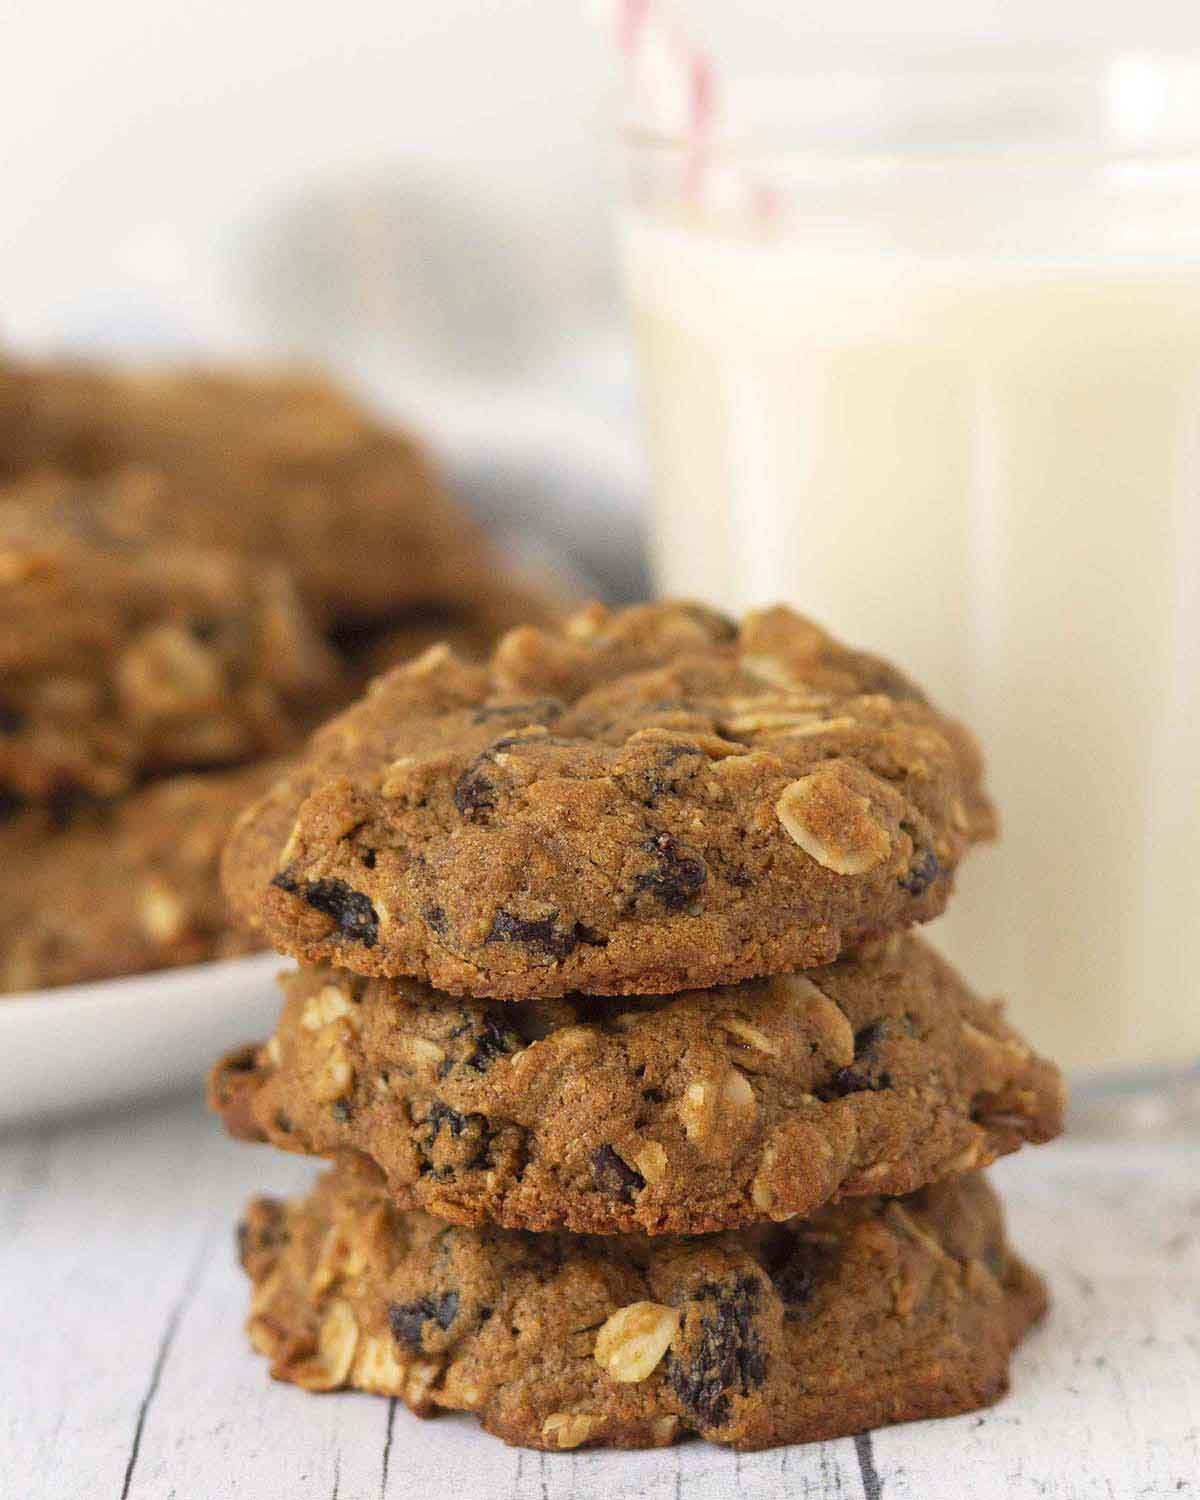 Image shows three oatmeal cookies with raisins stacked on top of each other.